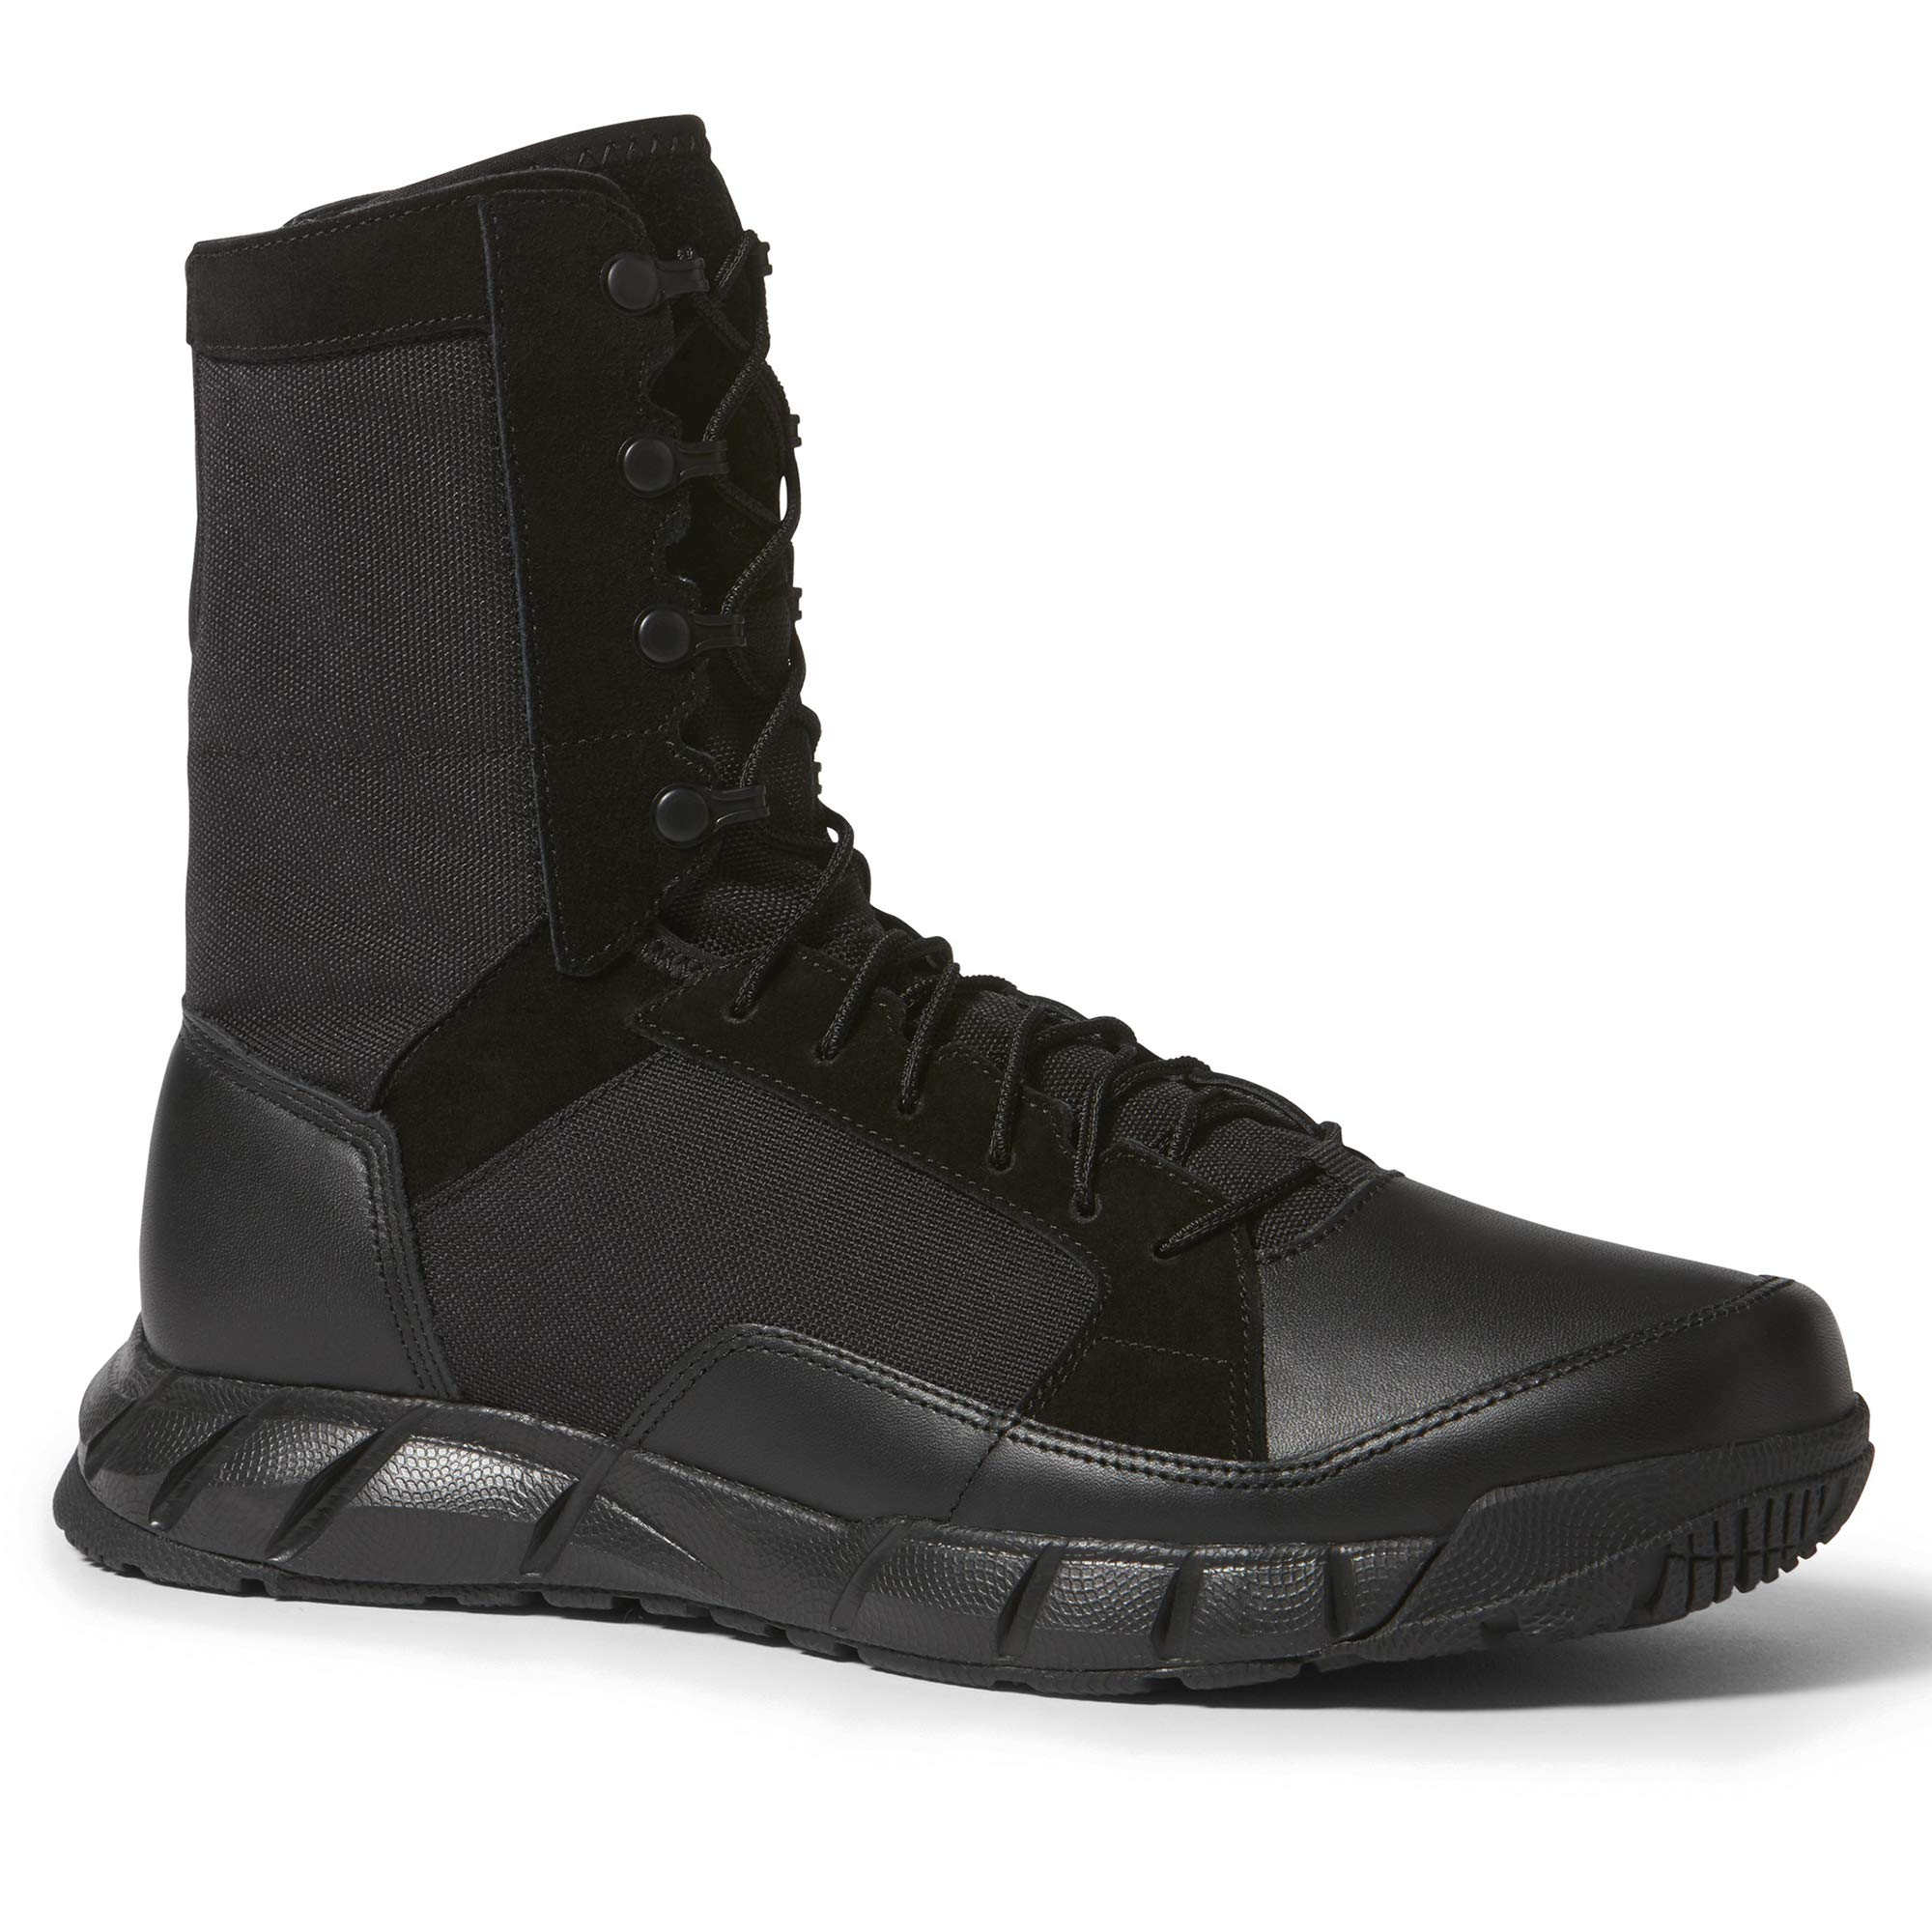 Oakley Men's SI Light Patrol Boots,10,Blackout by Oakley